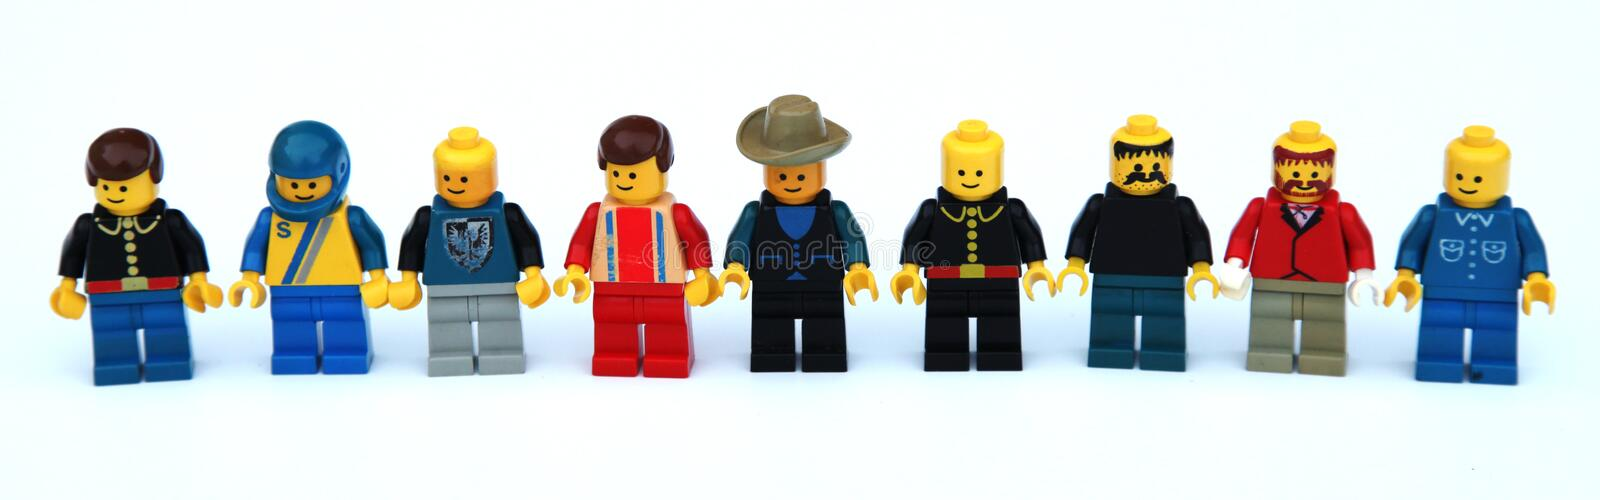 Lego figurines royaltyfria bilder